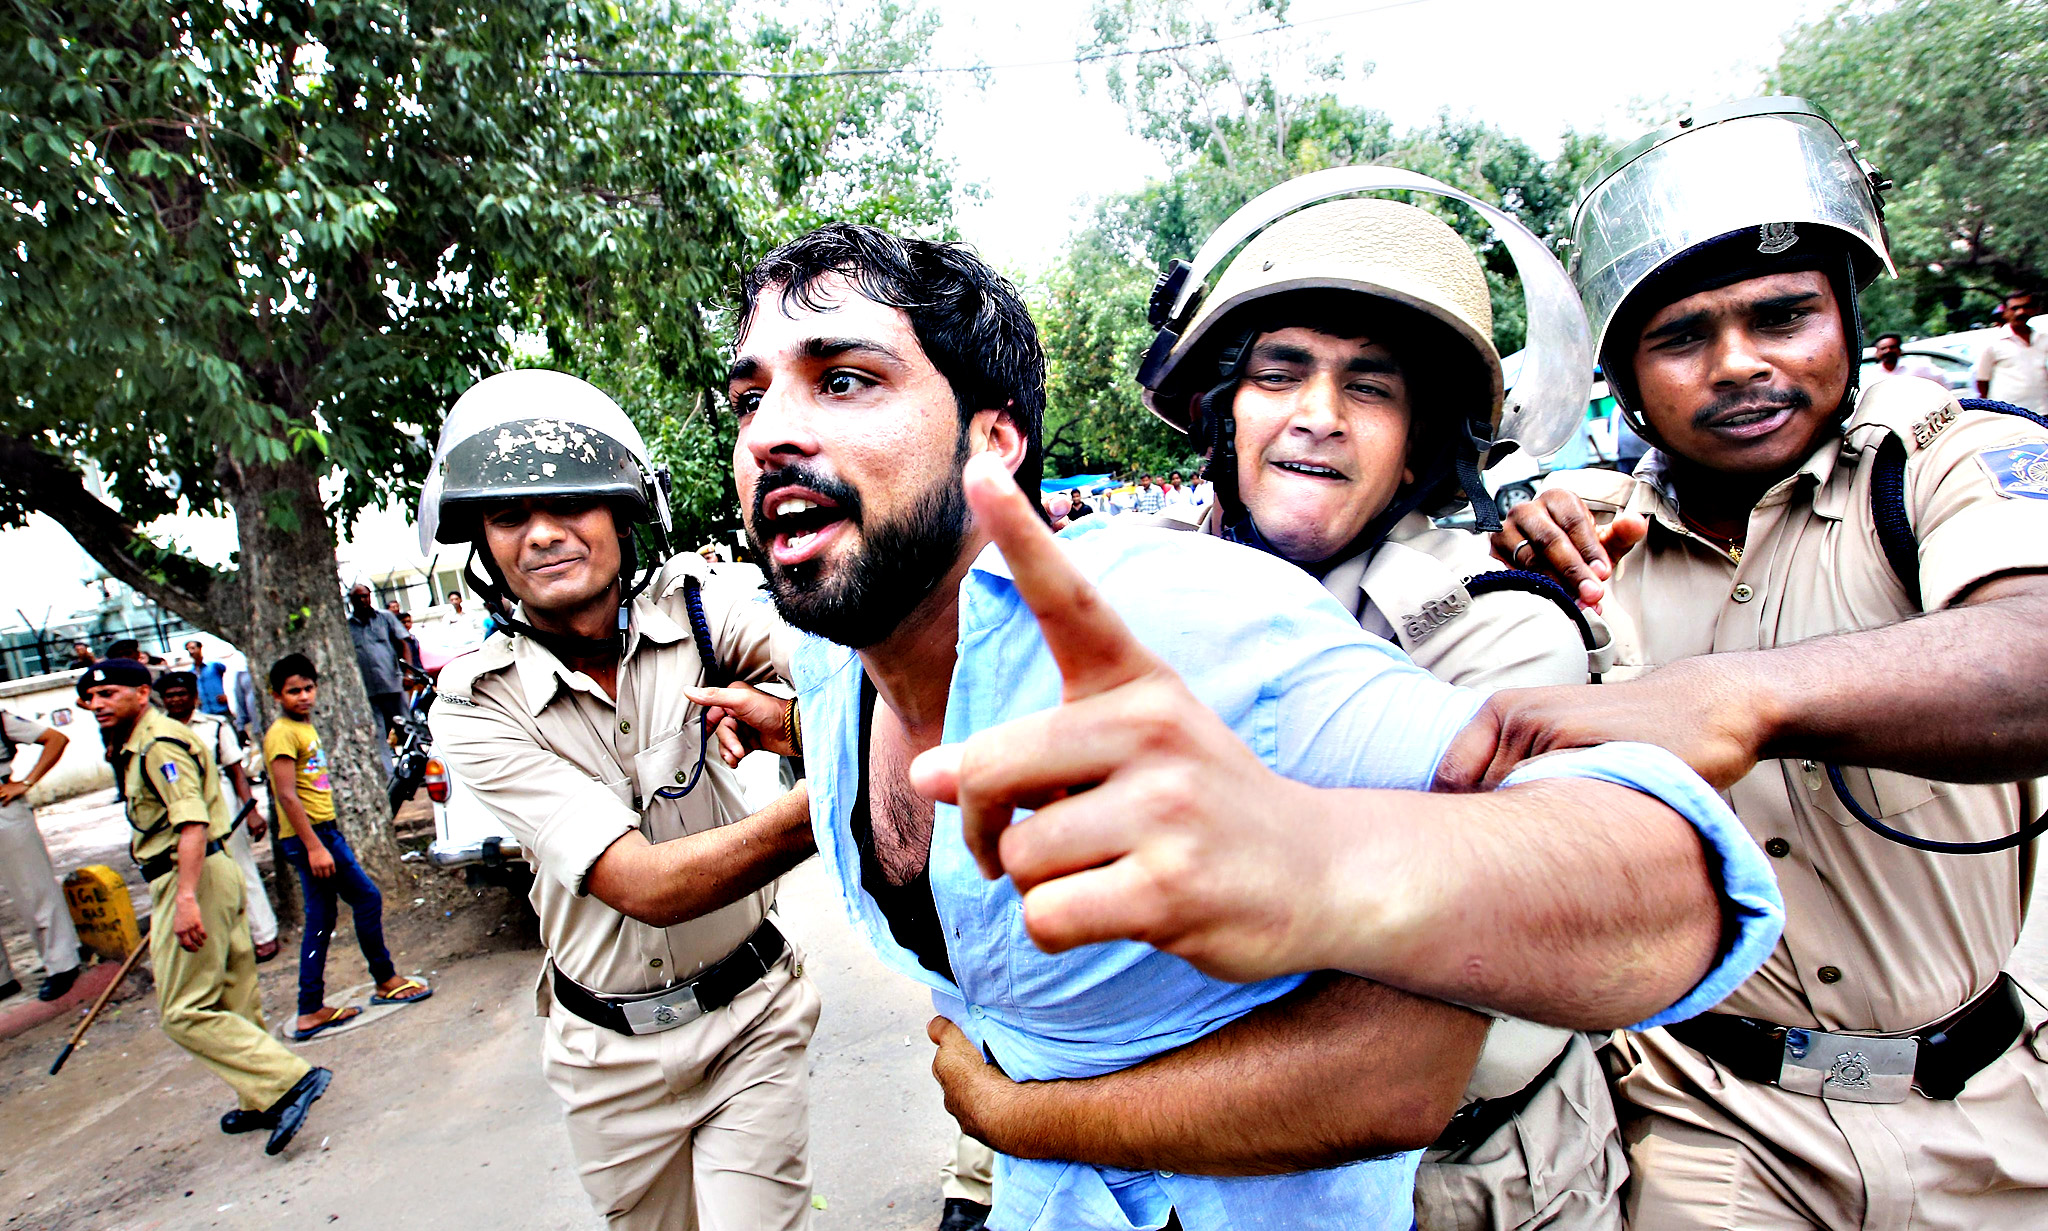 Indian police detain a Youth Congress activist after they storm a barricade during a protest against the Bhartiya Janta Party (BJP) led Government near parliament house in New Delhi, India, 22 July 2015. Members of Indian Youth Congress protested against the Ministers of BJP led Government for their alleged involvement in various scams including the recruitment racket in Vyapam or the Madhya Pradesh Professional Examination Board and helping former cricket official, Lalit Modi